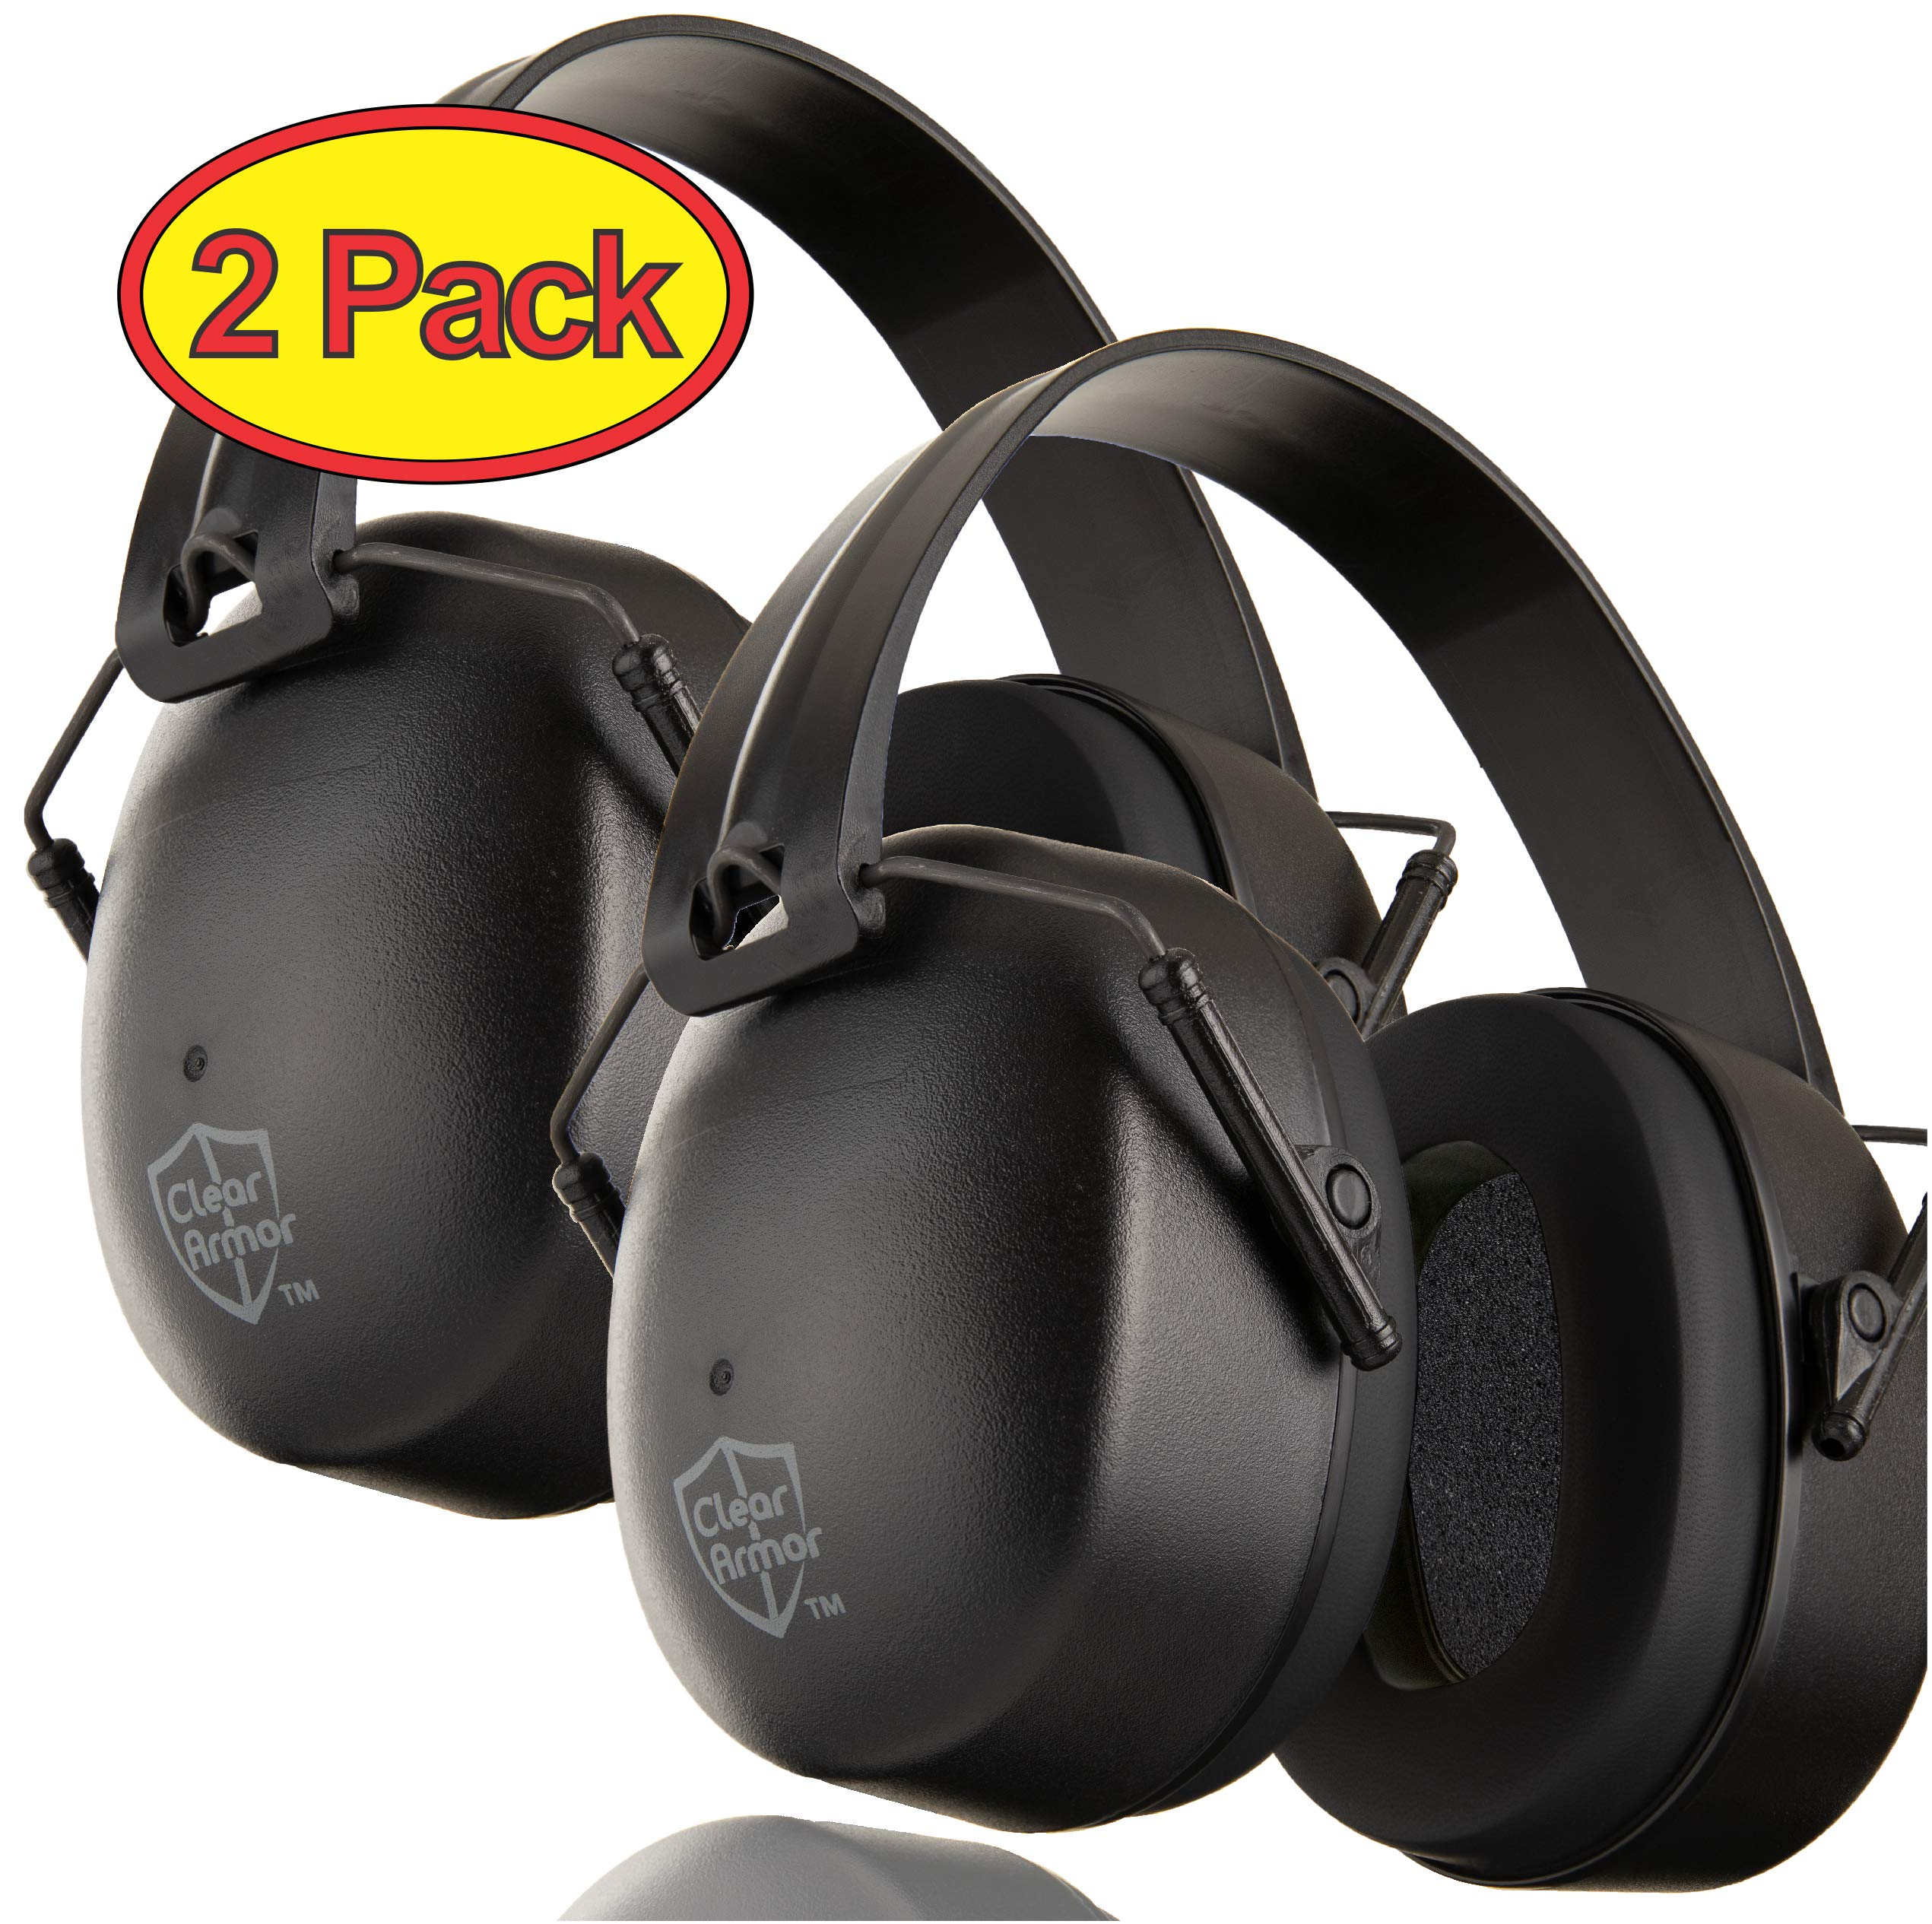 ClearArmor 2 Pack - Safety Shooting Ear Muffs Hearing Ear Protection - 31.5 dB SNR Noise Reduction - Comfortable Earmuffs That Work for Hunting, Gun Range, Mowing by ClearArmor